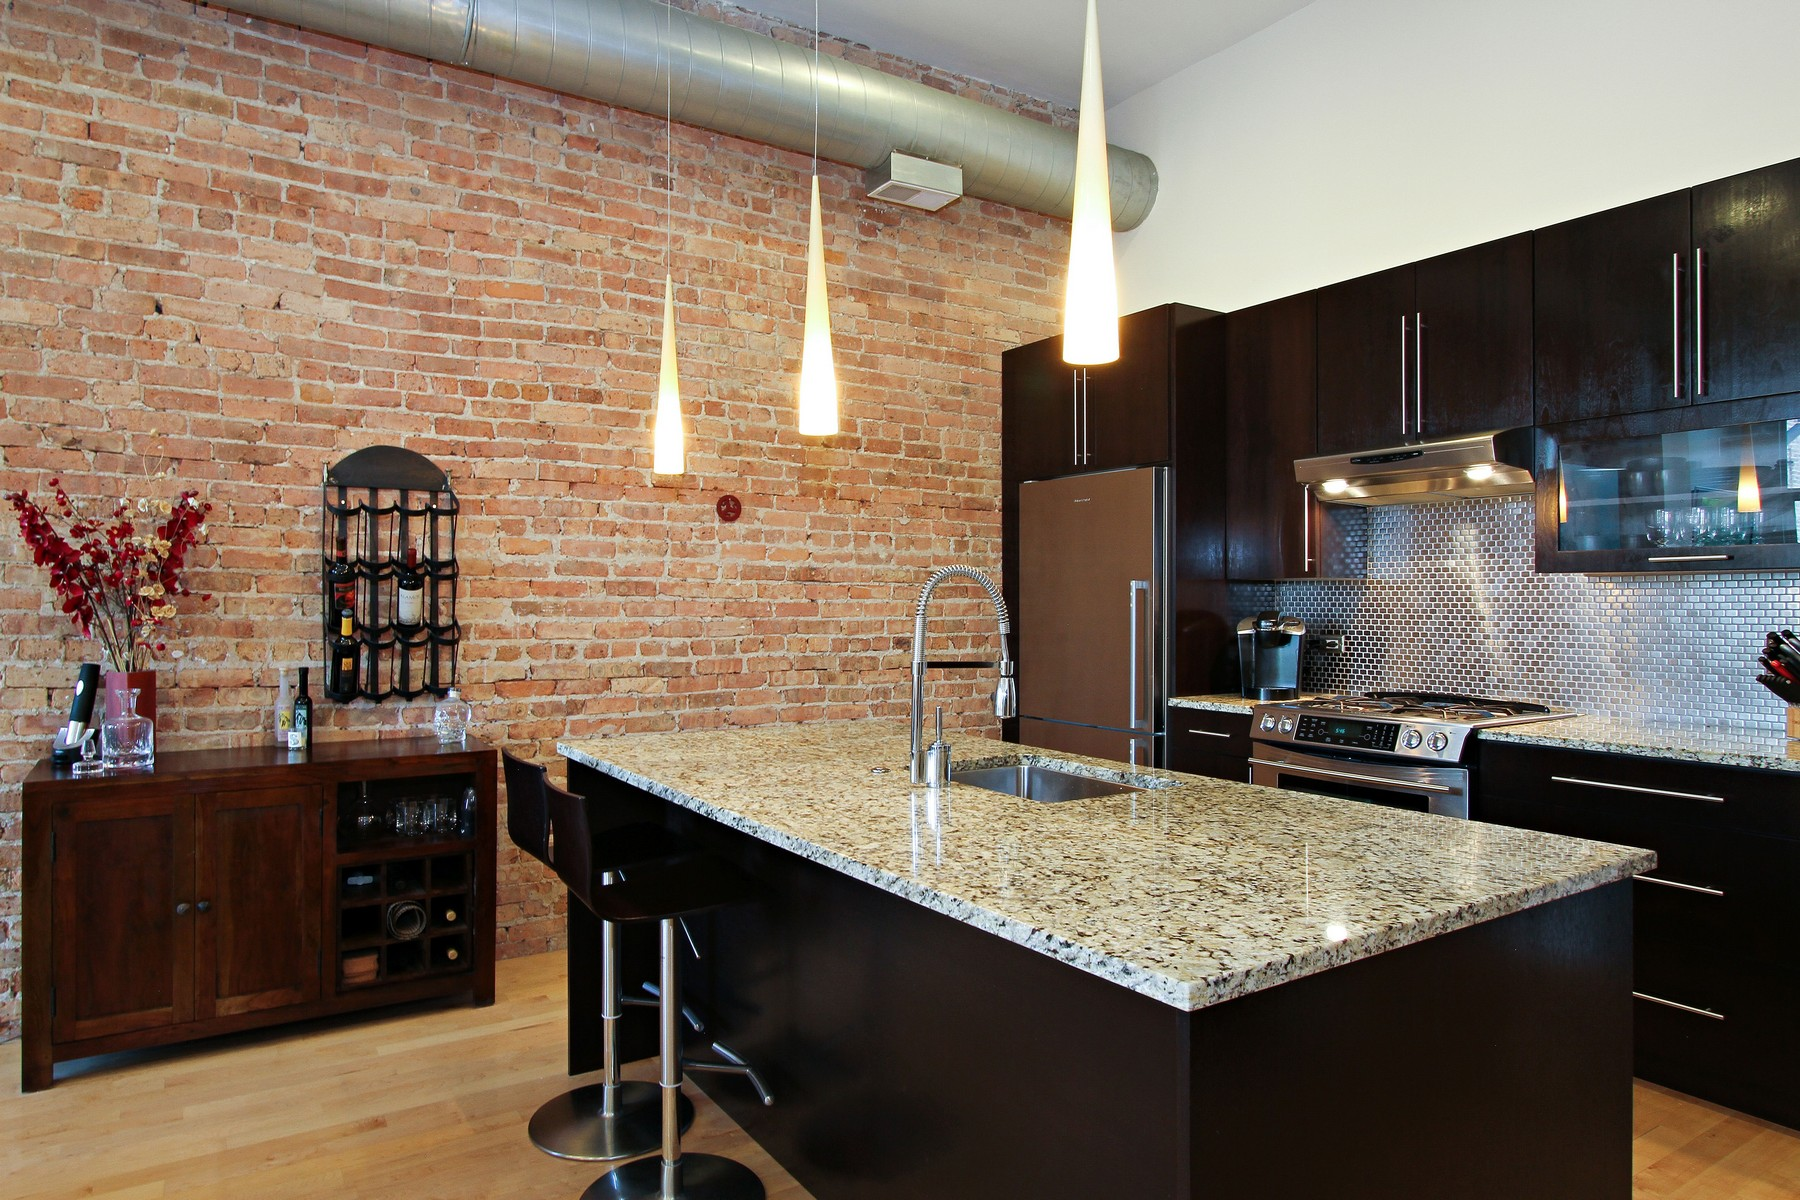 Single Family Home for Sale at A Unit Not To Miss 2411 W Walton Street Unit 2D Chicago, Illinois, 60622 United States